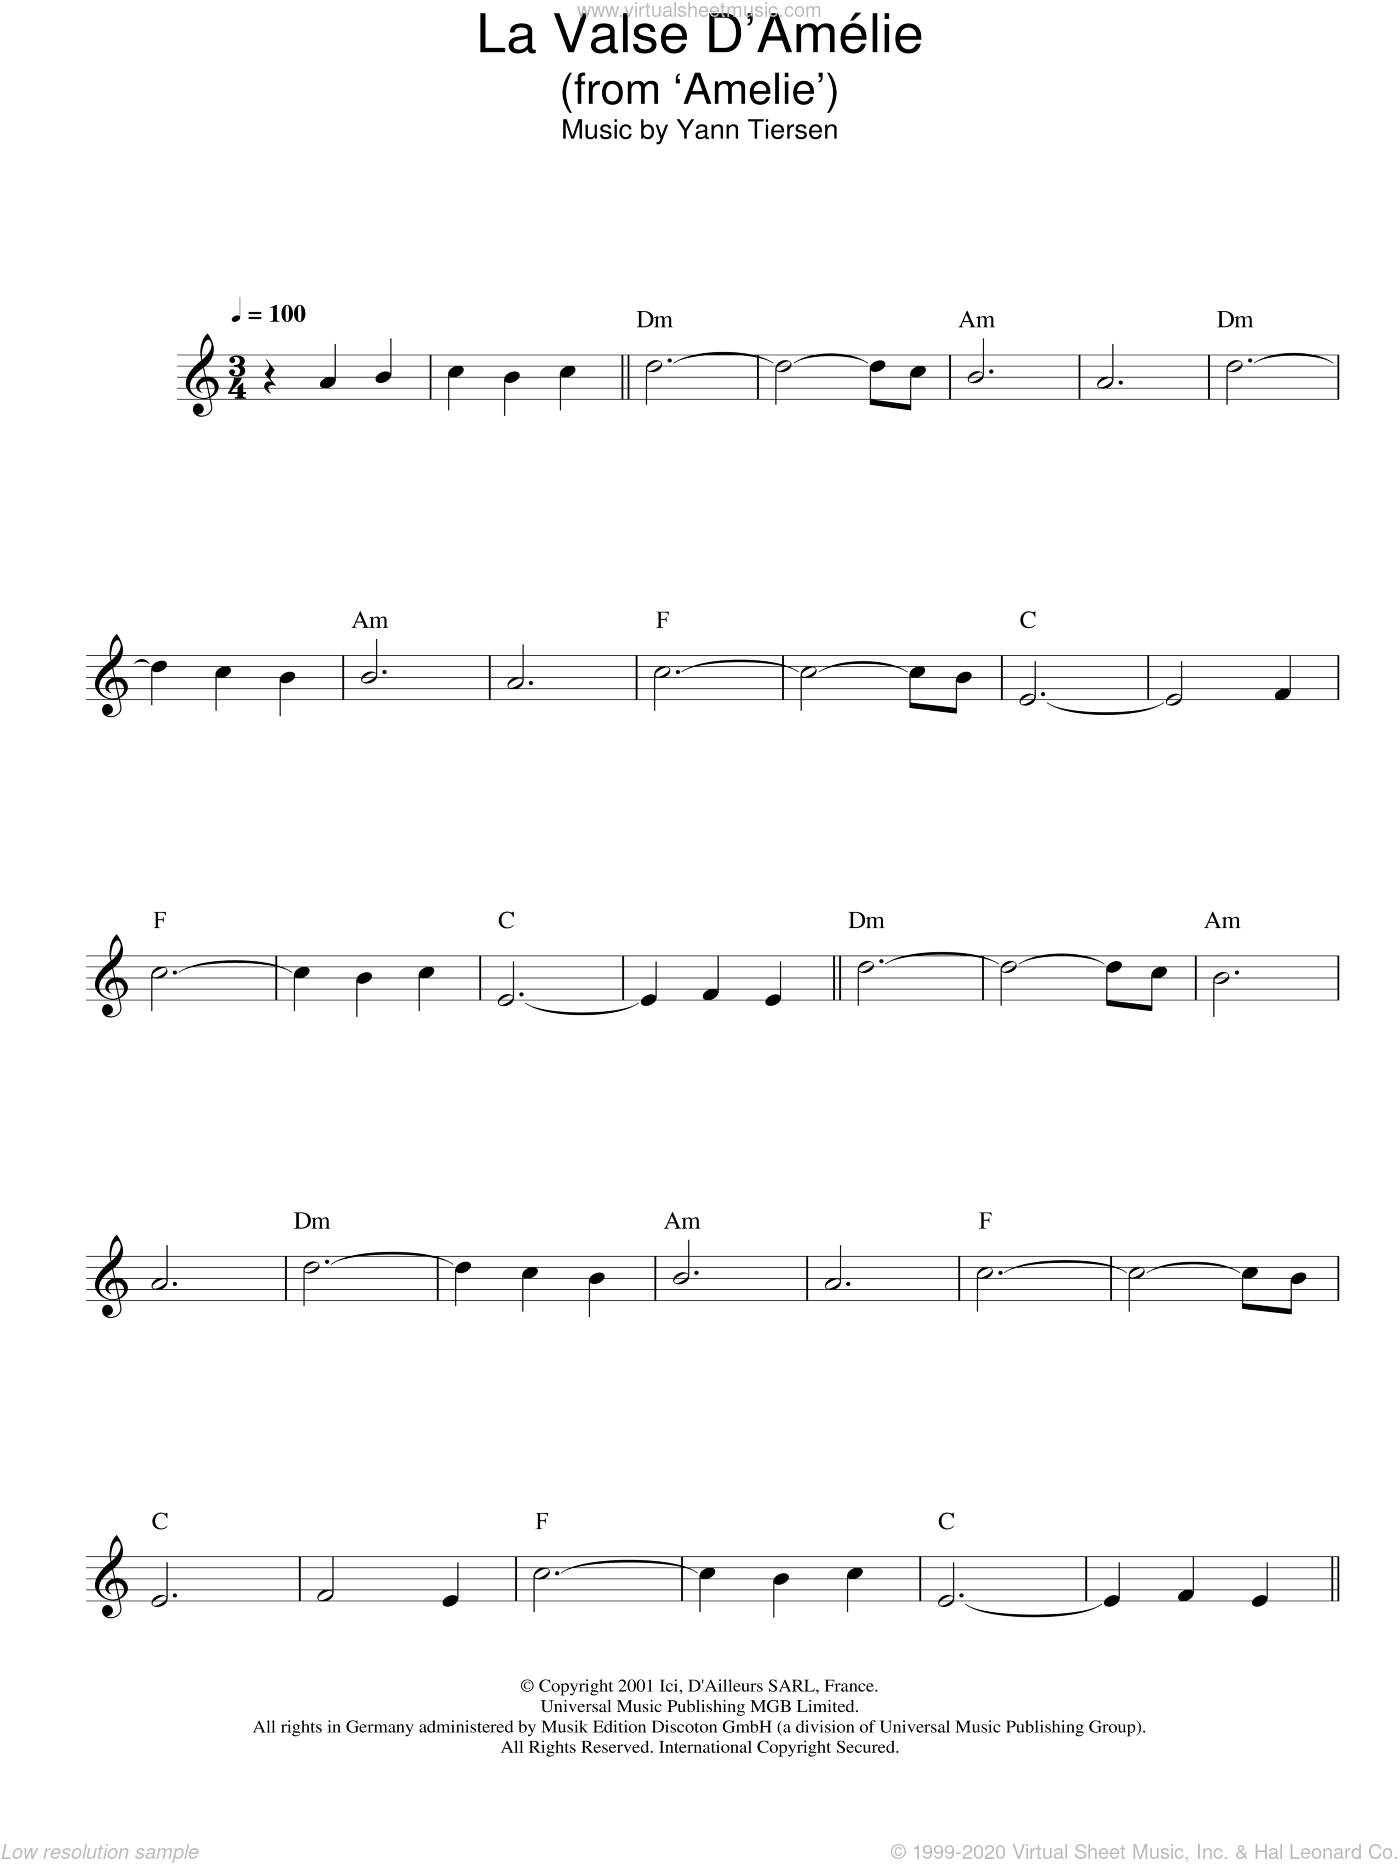 La Valse D'Amelie sheet music for voice and other instruments (fake book) by Yann Tiersen